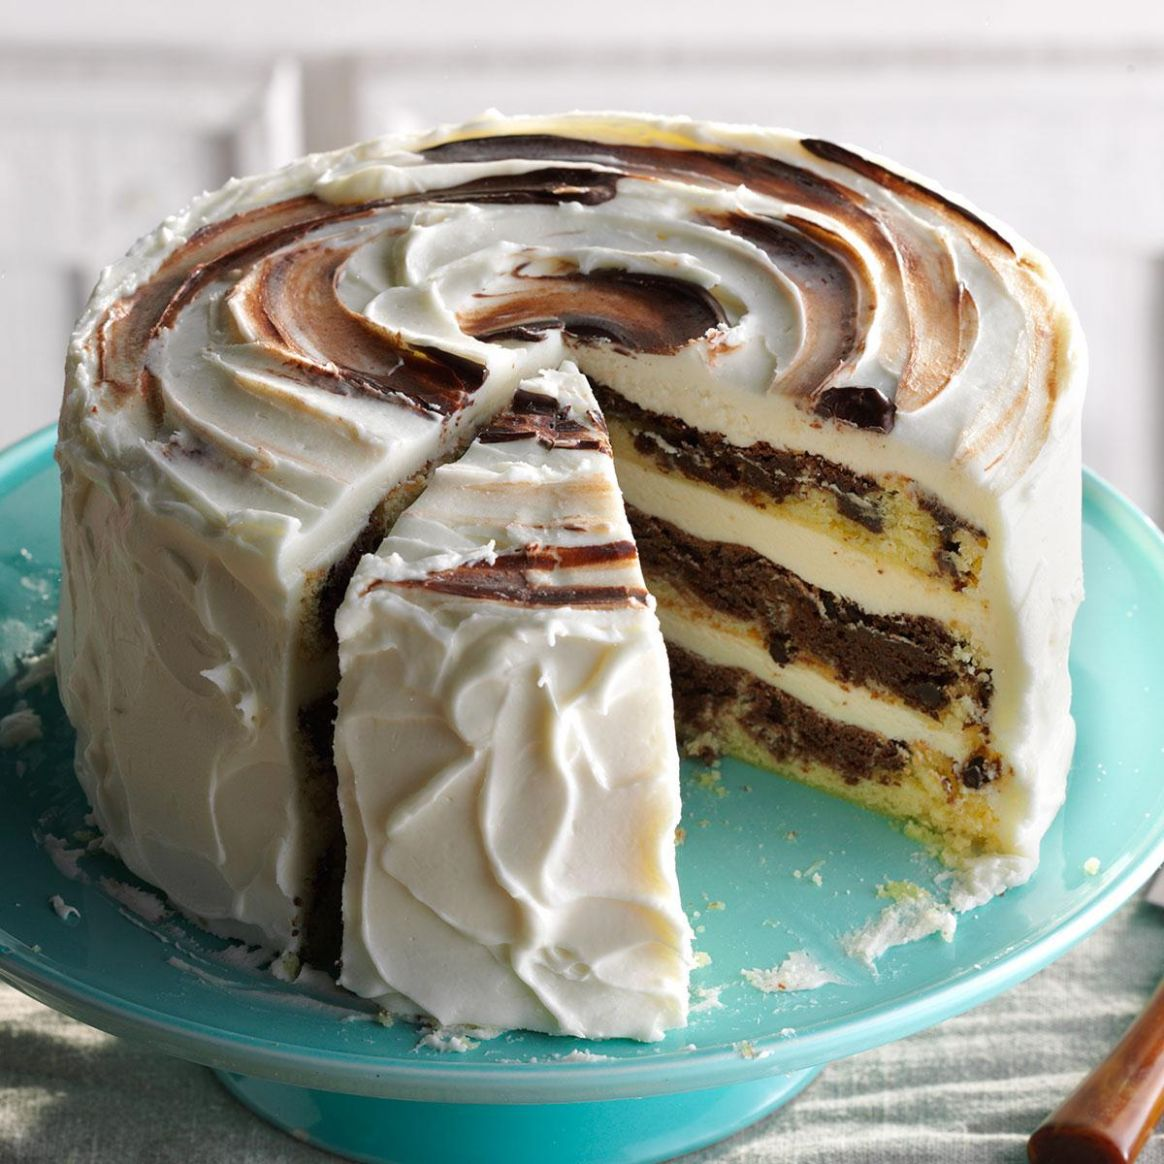 Marvelous Marble Cake - Recipes Cakes